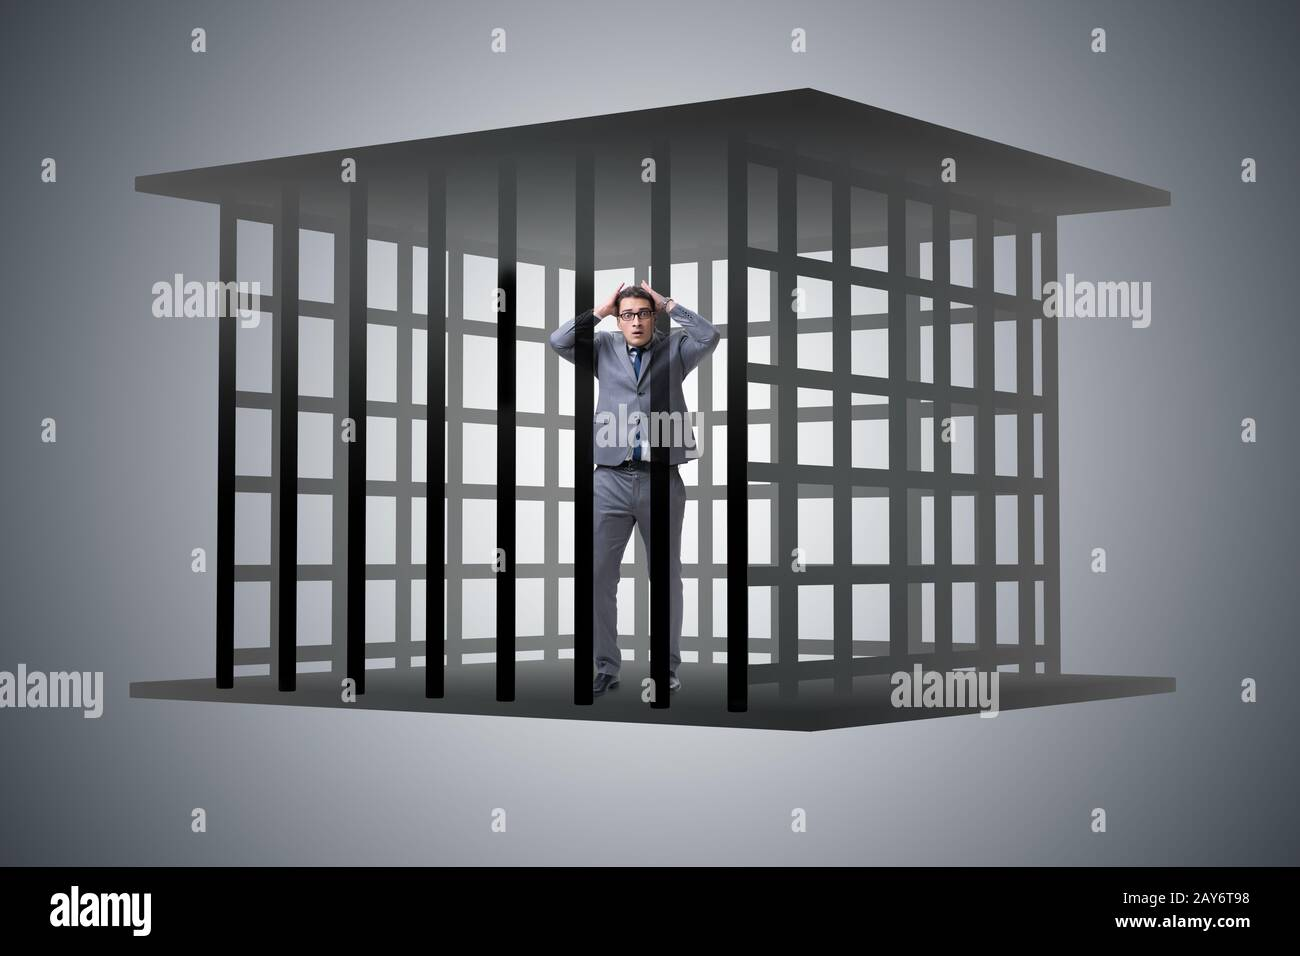 Businessman in the cage business concept Stock Photo